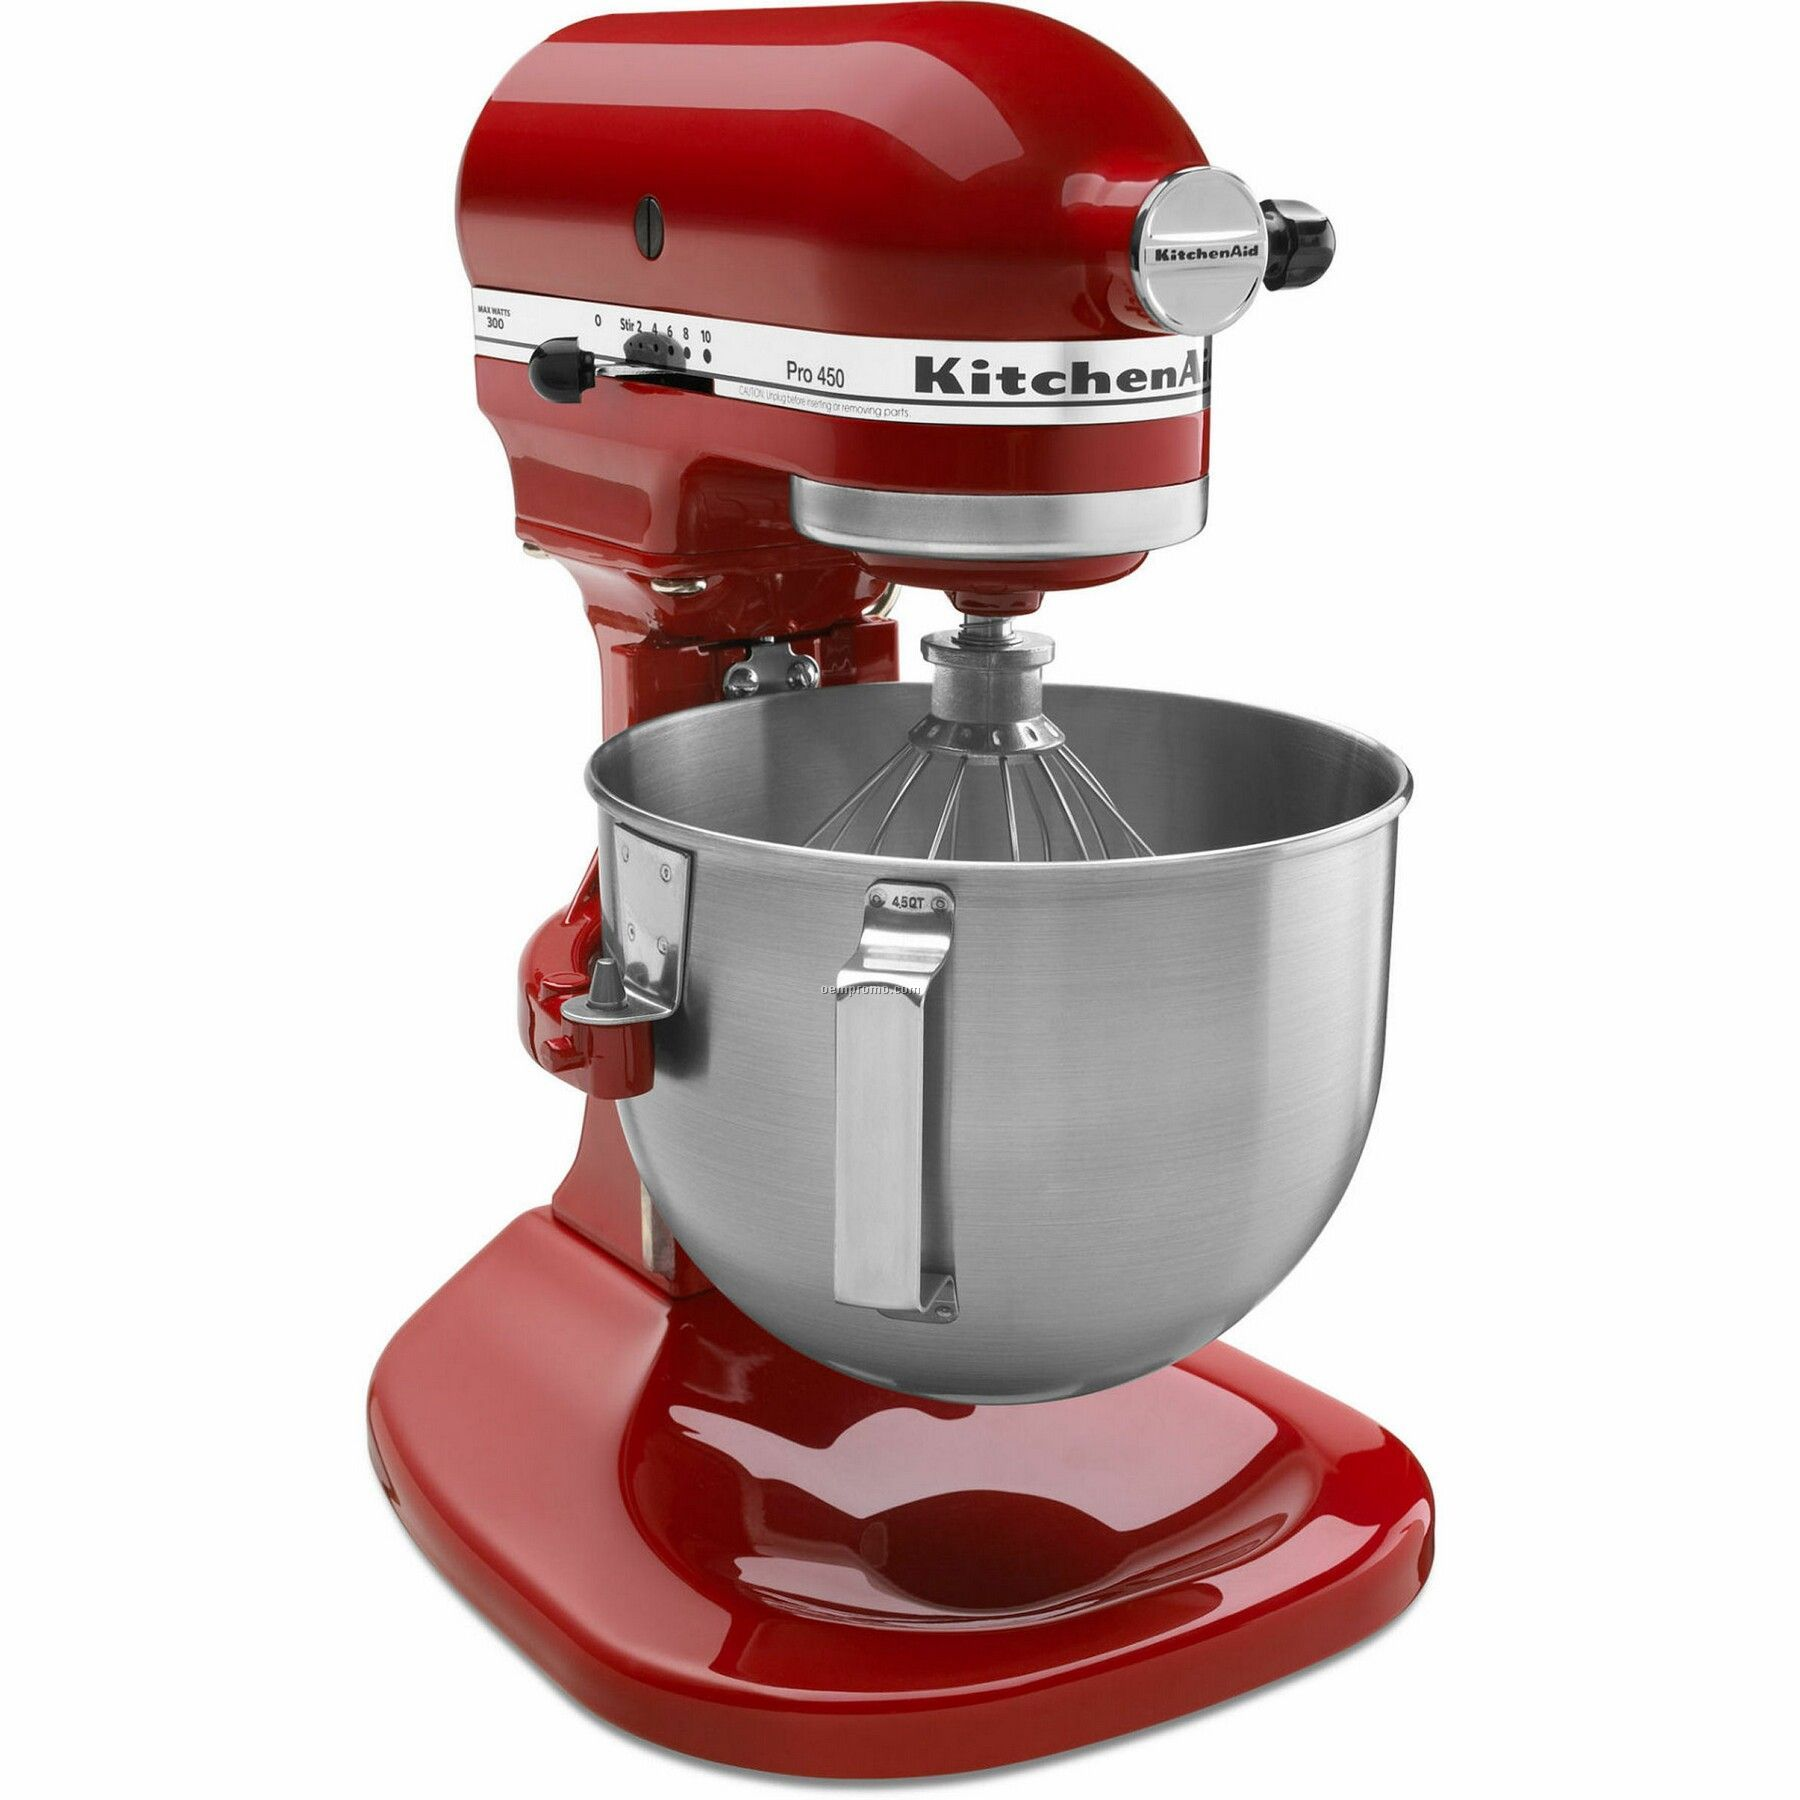 Remarkable Red KitchenAid Mixer 1800 x 1800 · 199 kB · jpeg